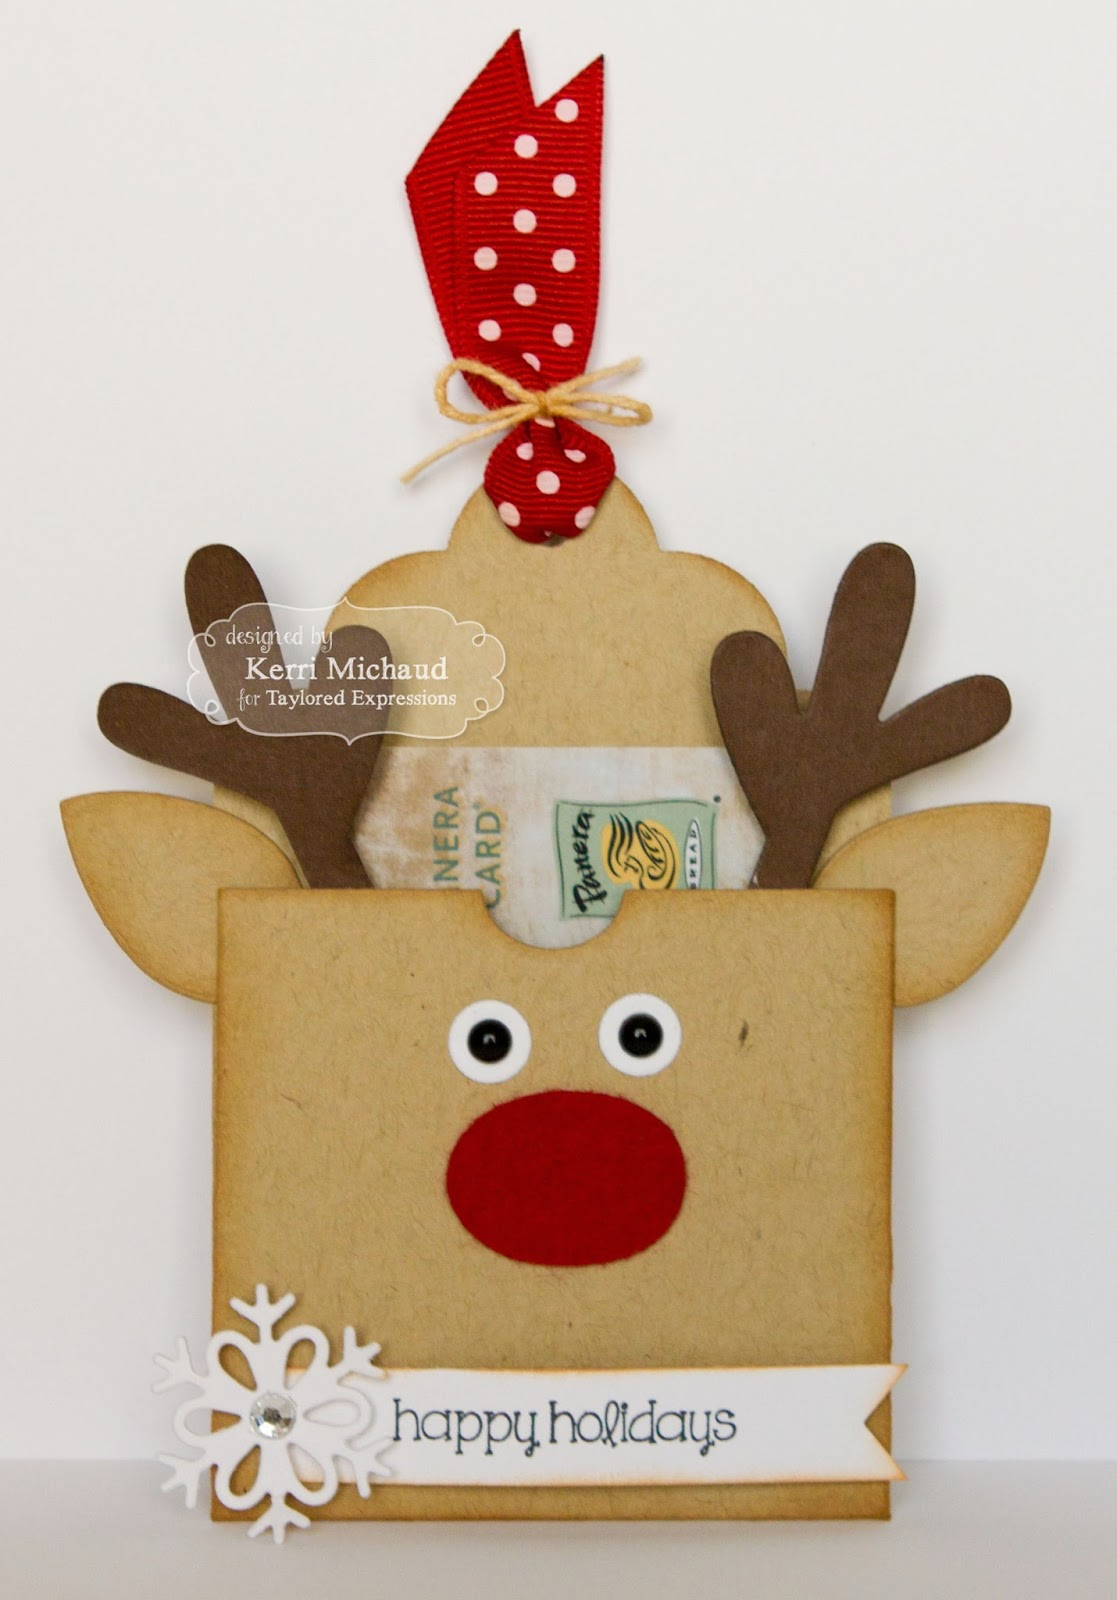 Taylored Expressions October Sneak Peek: Christmas Doodles and Sack It Reindeer  Cards by Kerri